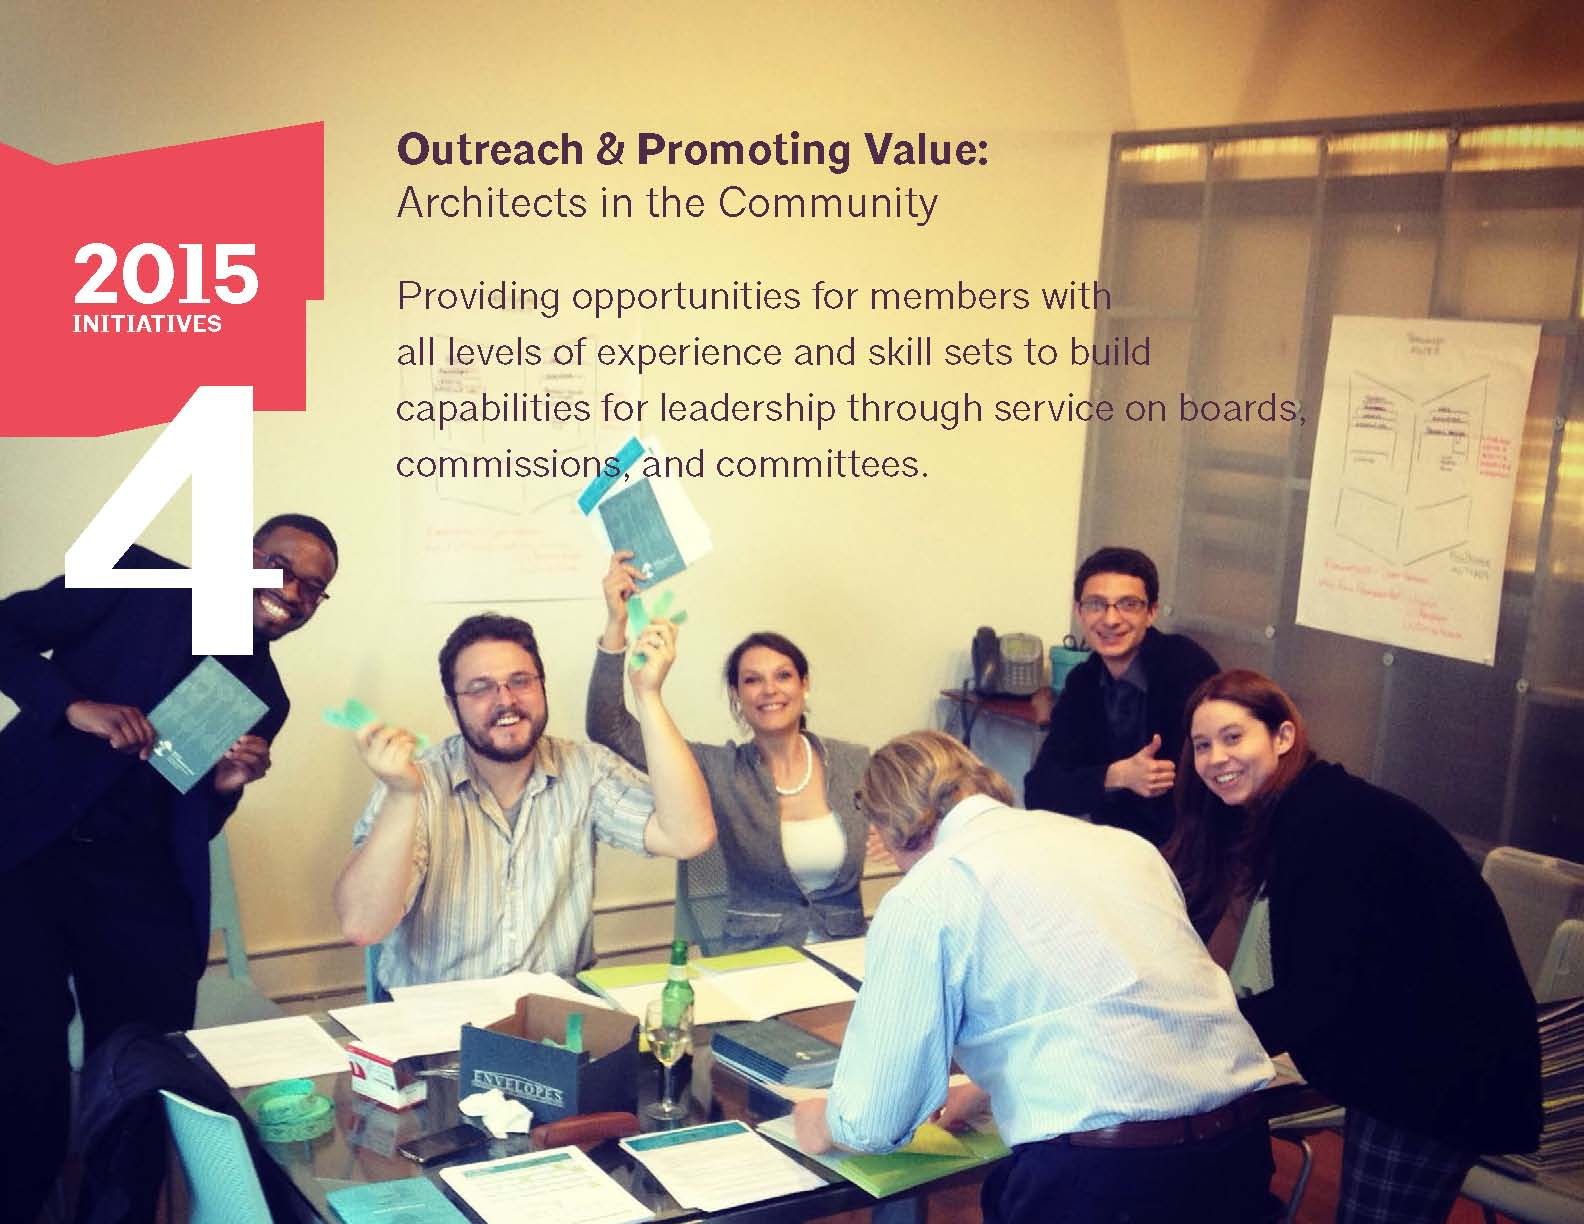 AIA Annual Report_2015 17